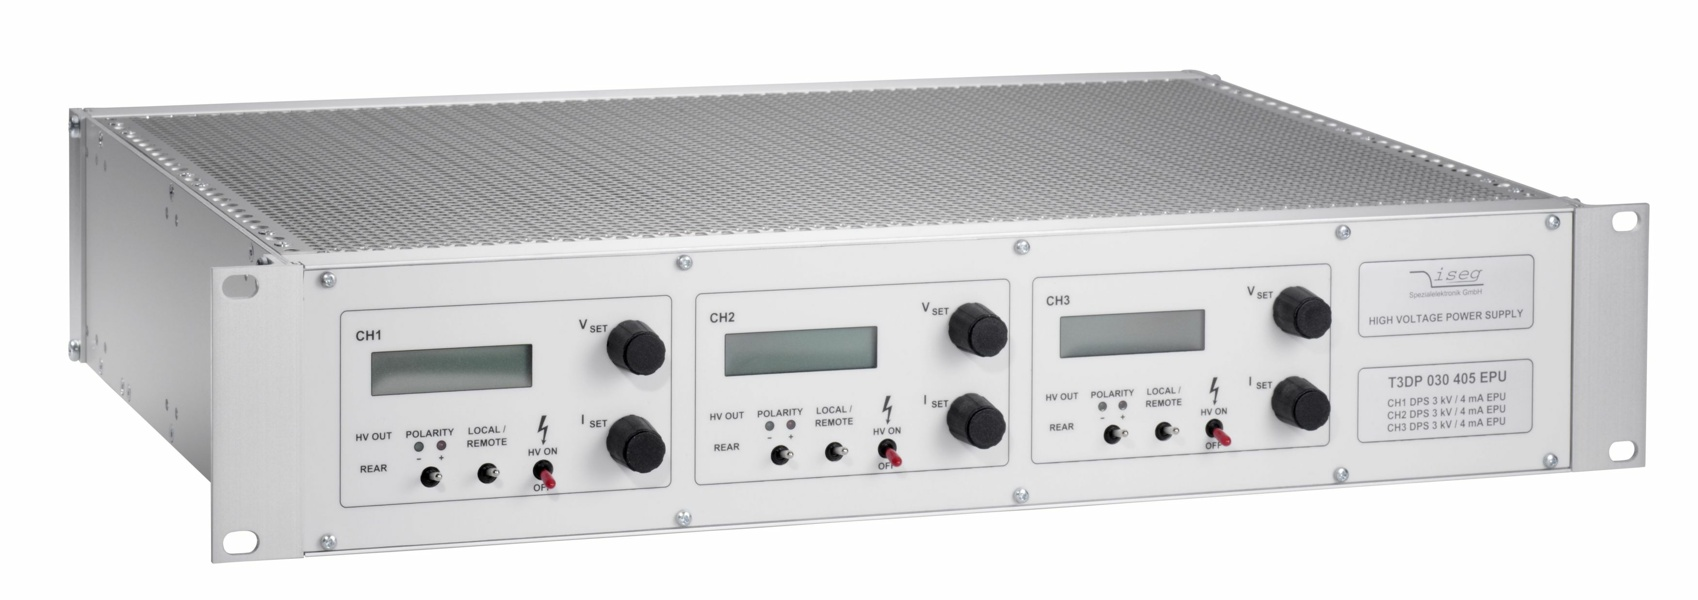 iseg THQ Desktop HV power supply with 1,2 or 3 channels.